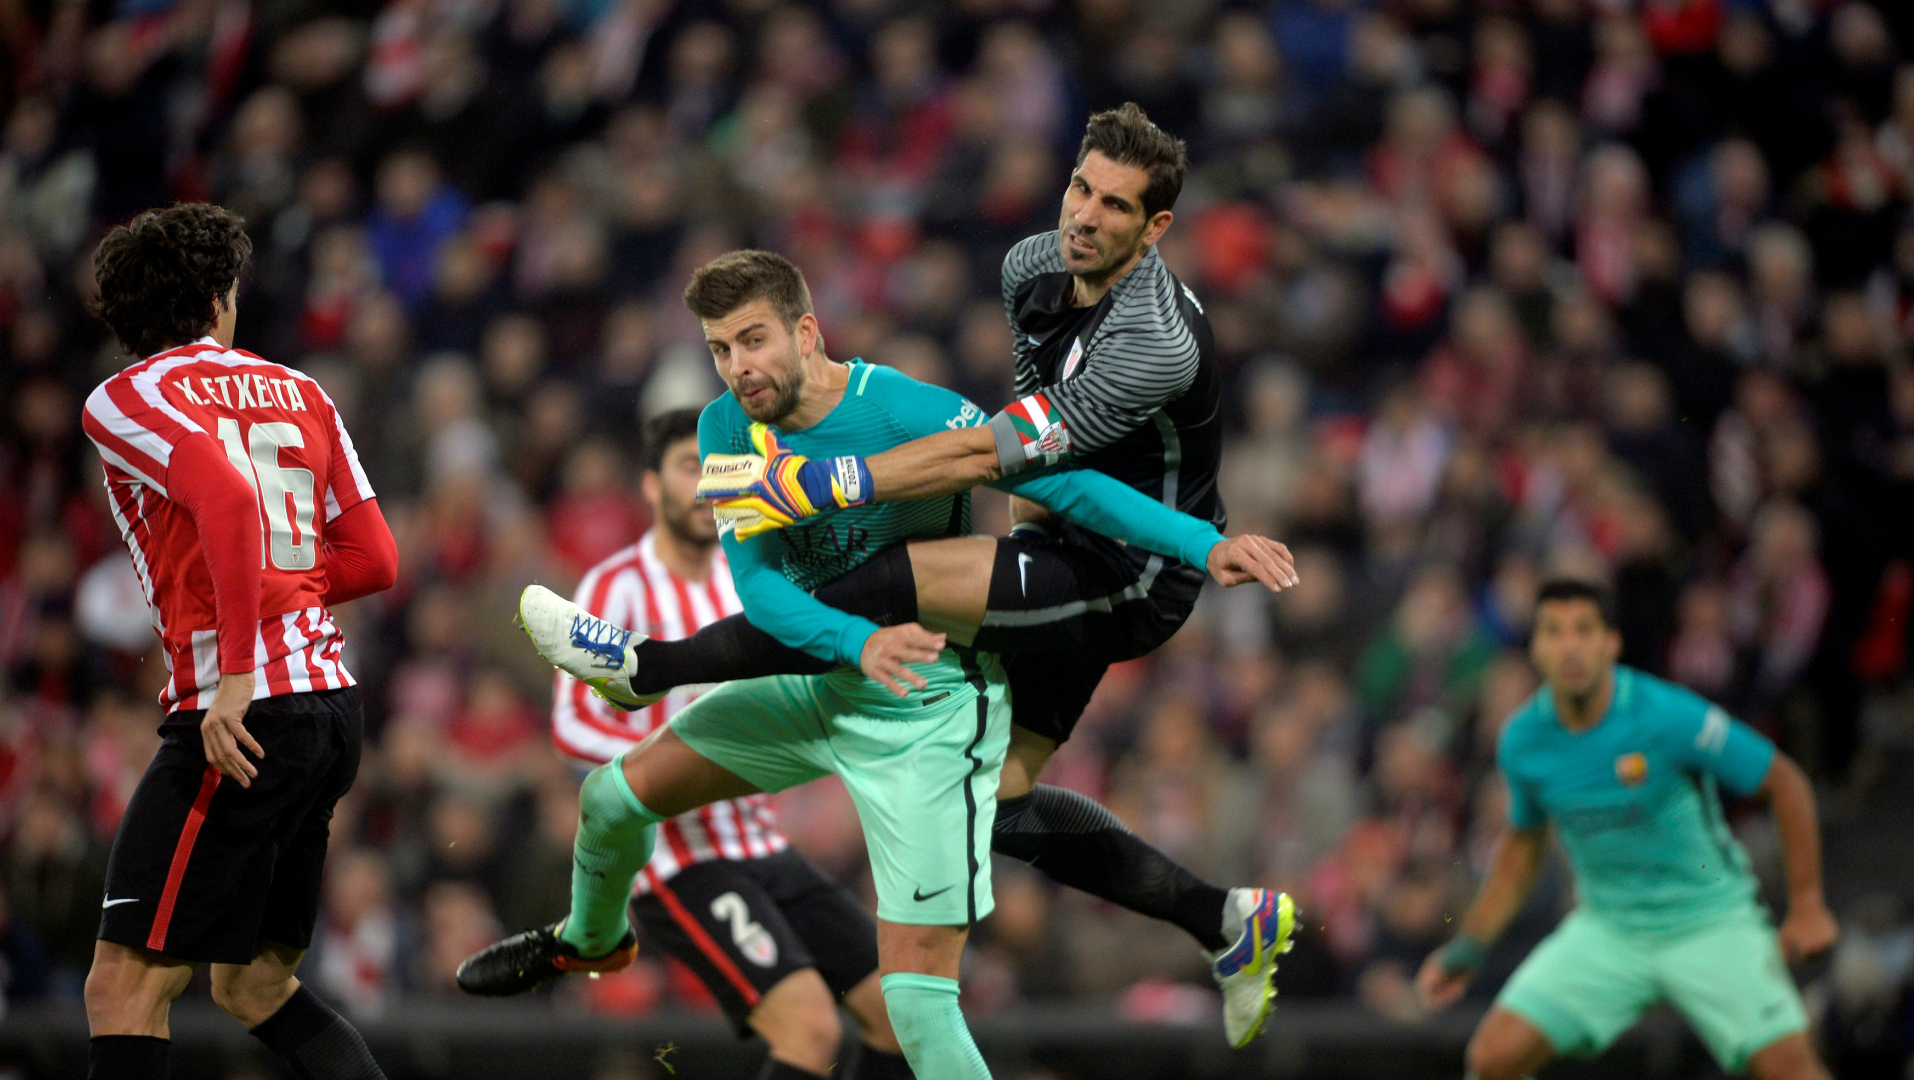 Gerard Pique, Gorka Iraizoz, Athletic Club - Barcelona, Copa del Rey, 01052017